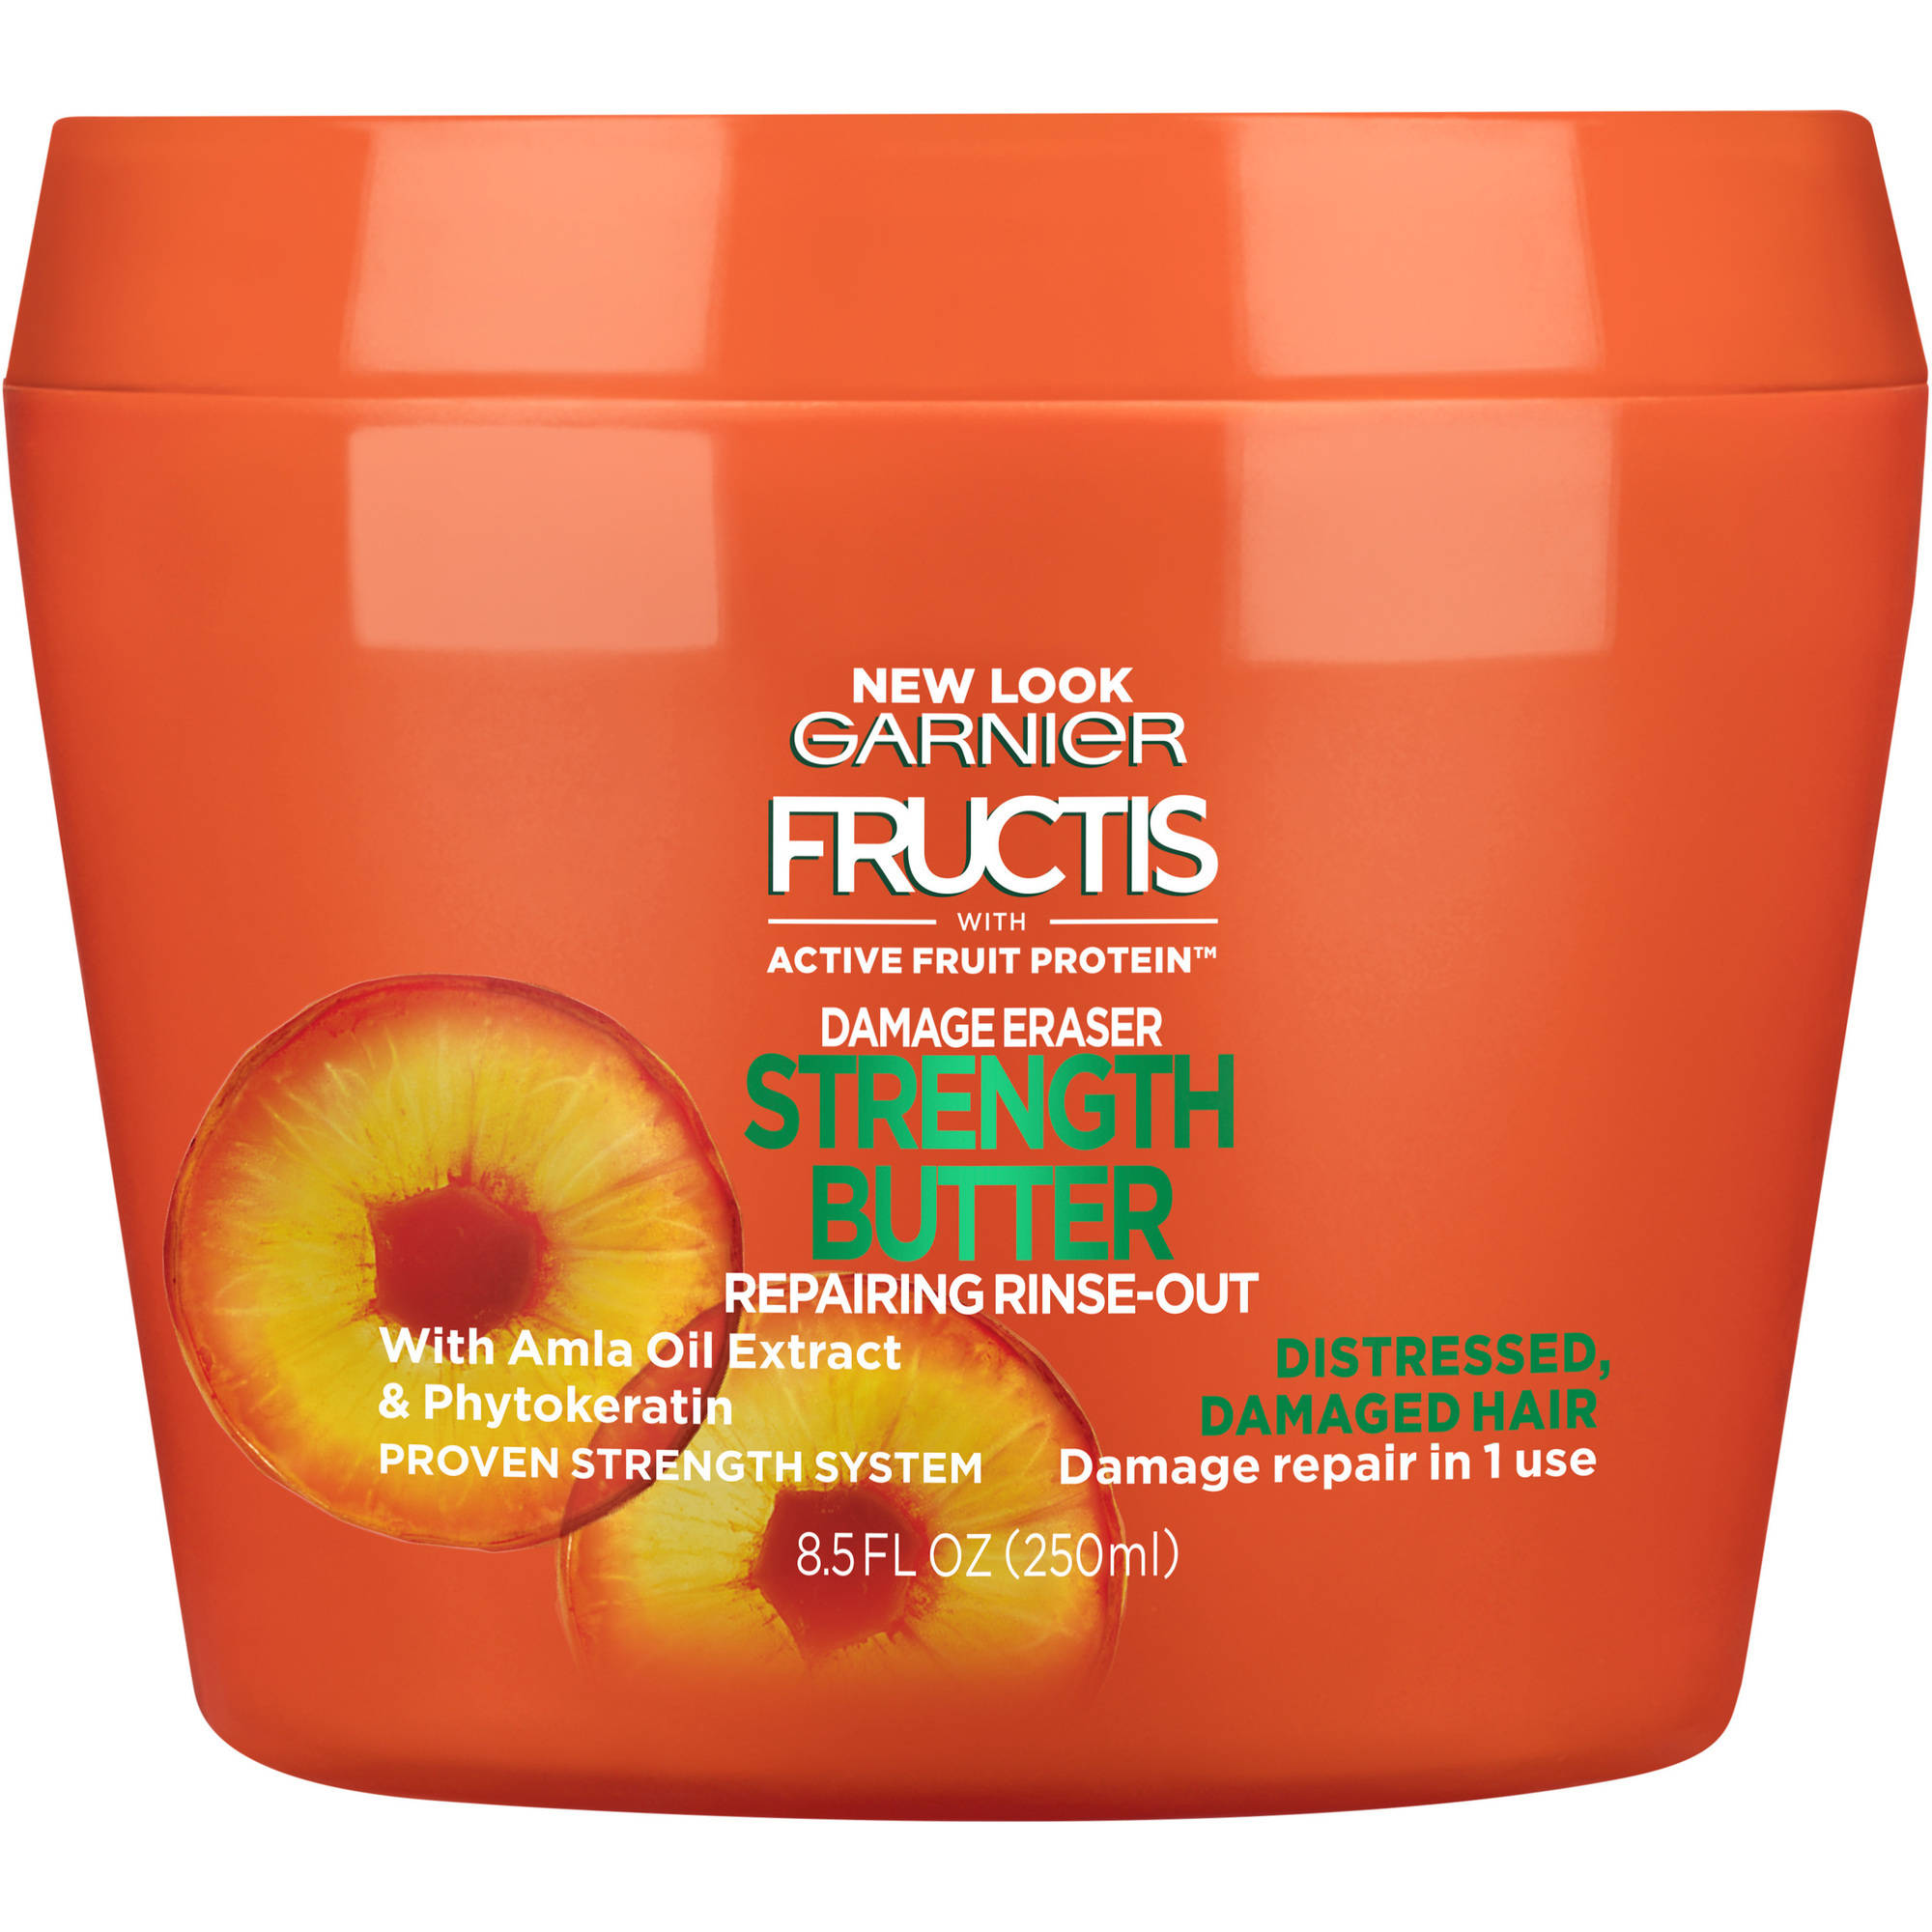 Fructis Damage Eraser Strength Reconstructing Butter Hair Mask For Distressed, Damaged Hair, 8.5 fl oz